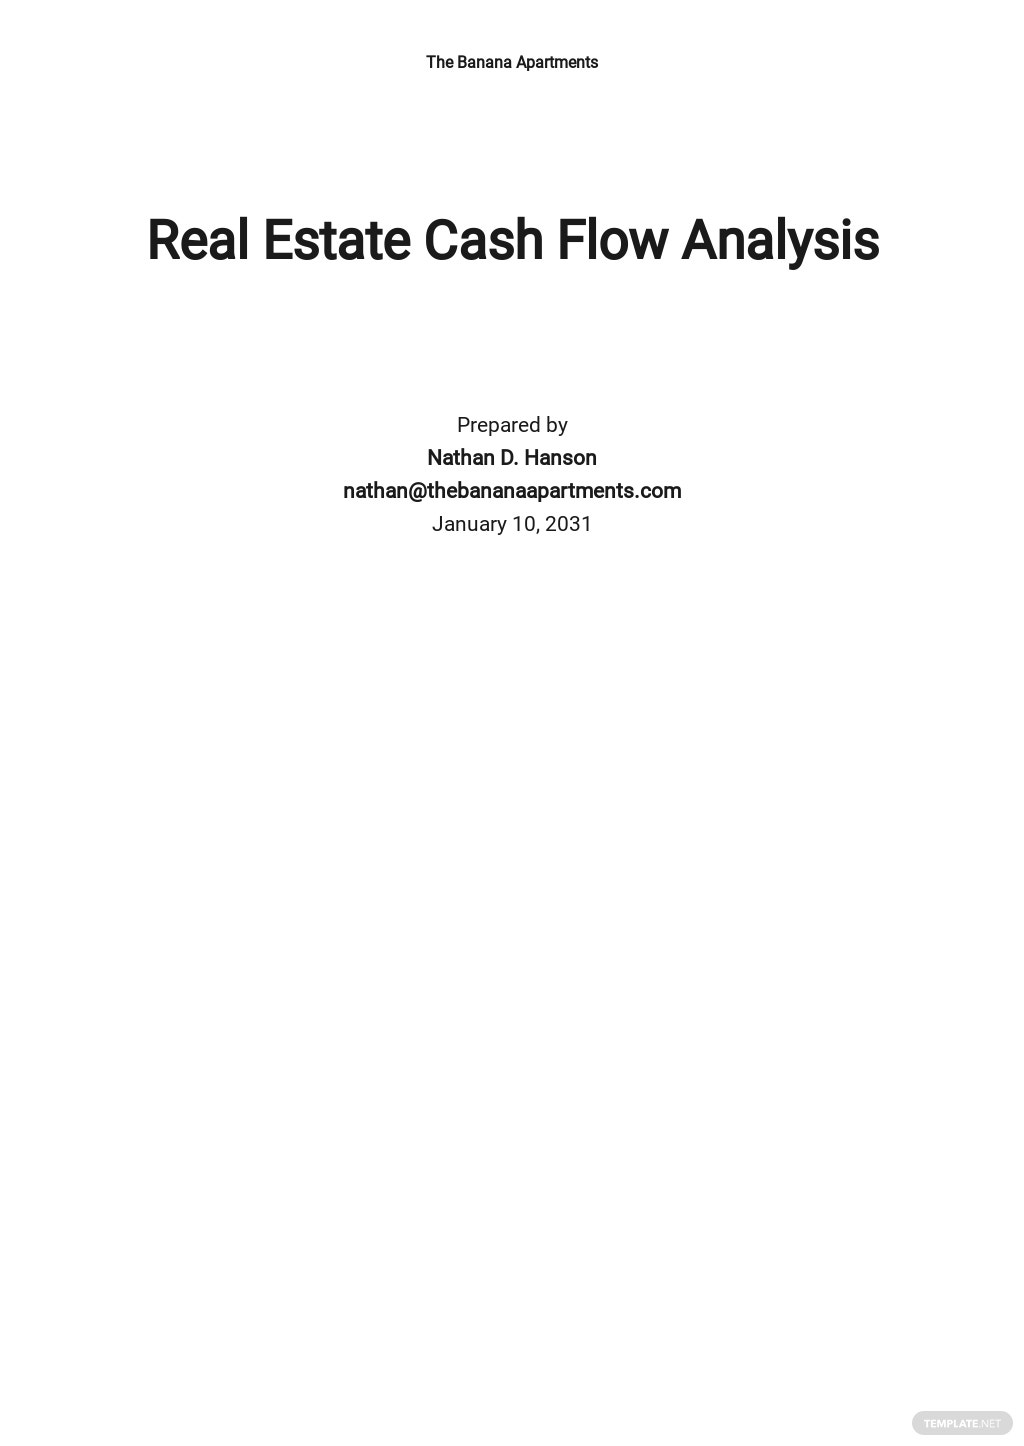 Real Estate Cash Flow Analysis Template